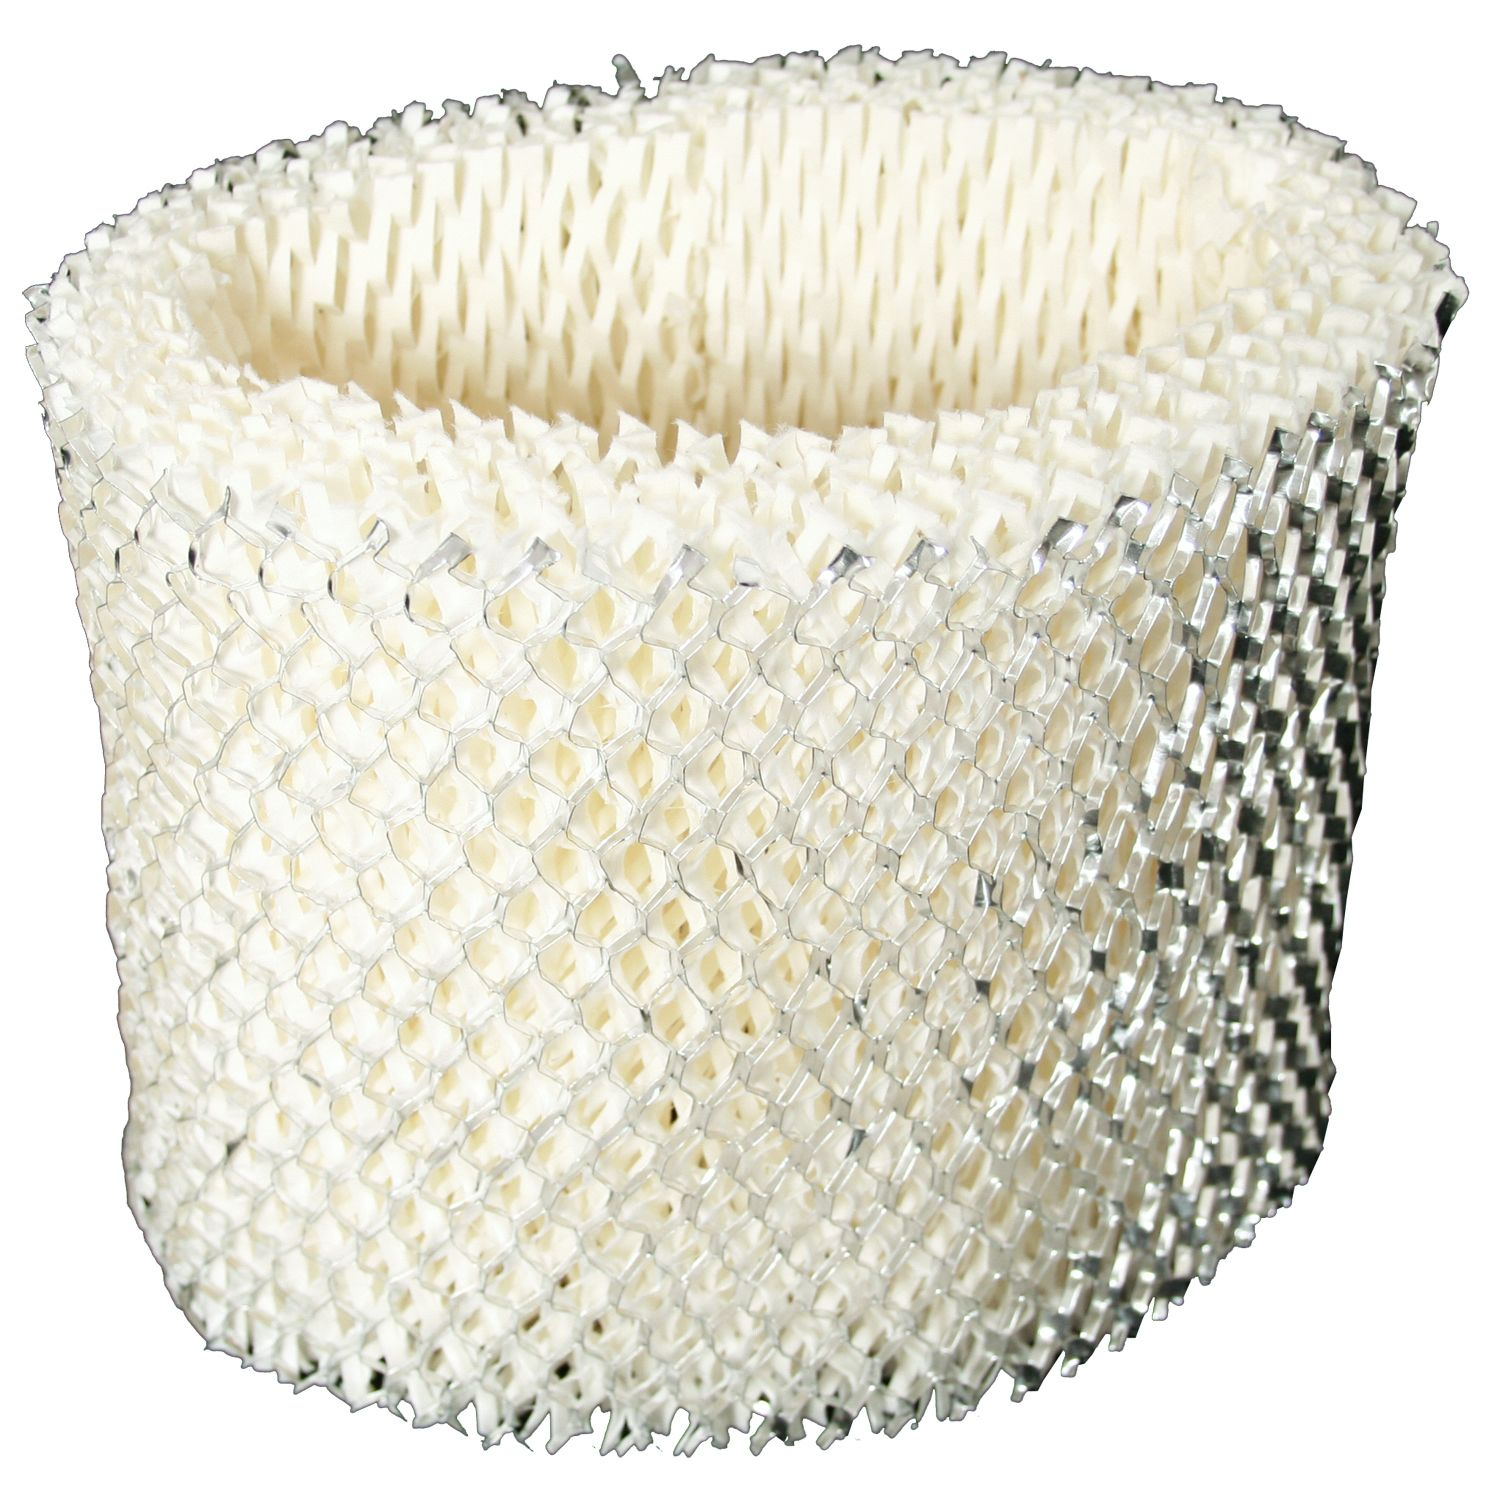 BESTAIR Humidi-WICK Humidifier Wick Filter H64-C